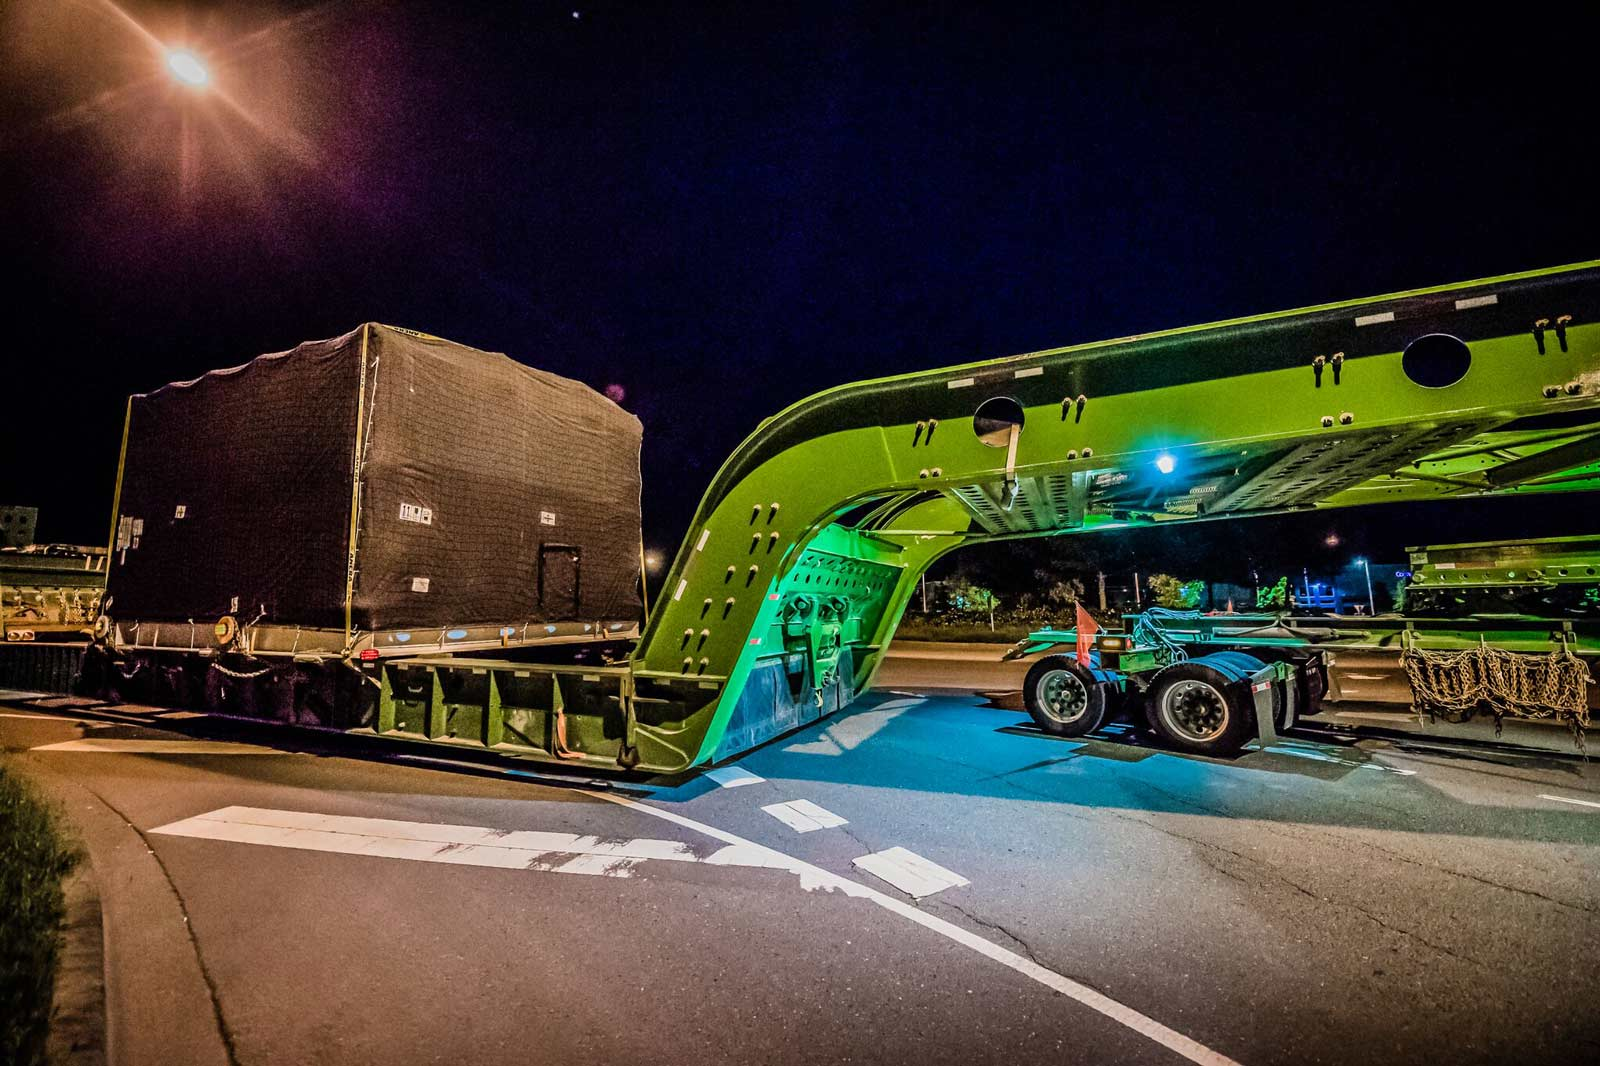 compressor package on a 150-ton dual lane trailer on the road at night